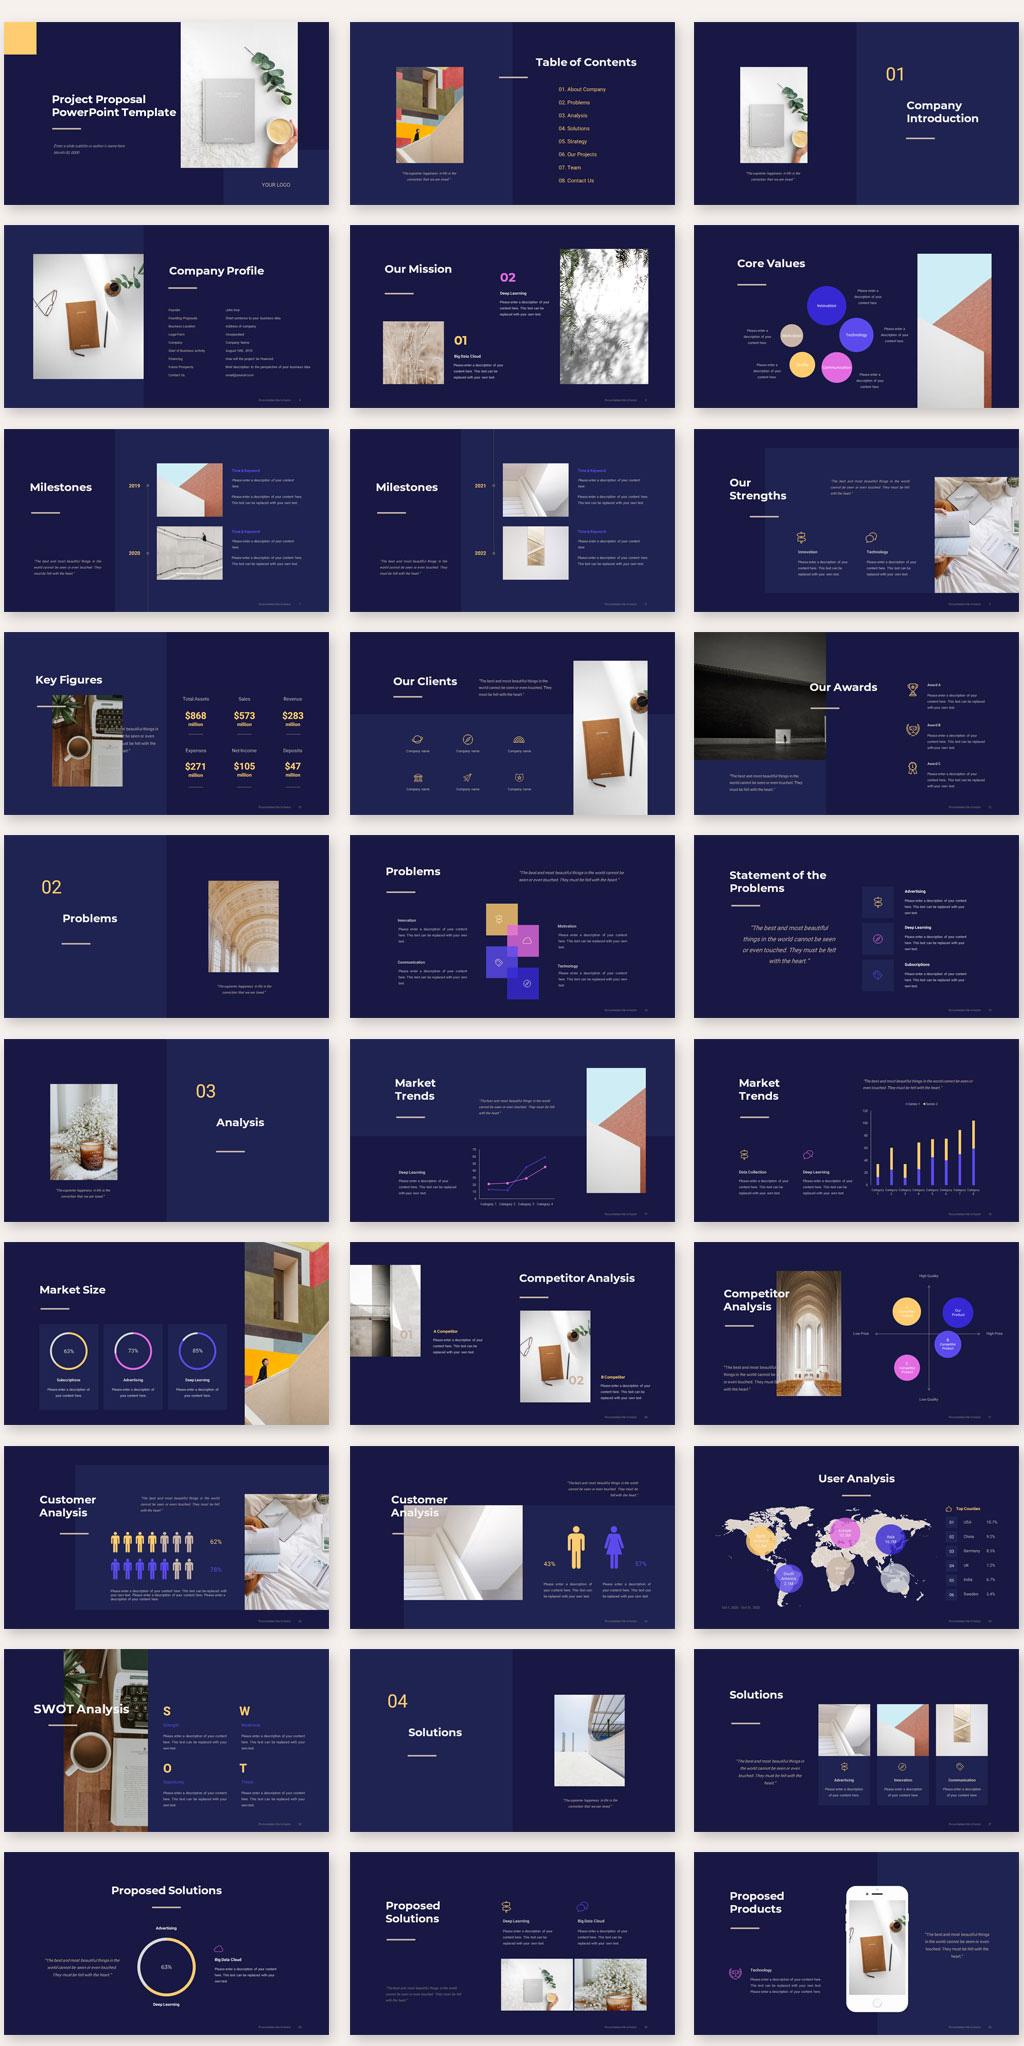 Project Proposal PowerPoint Template01